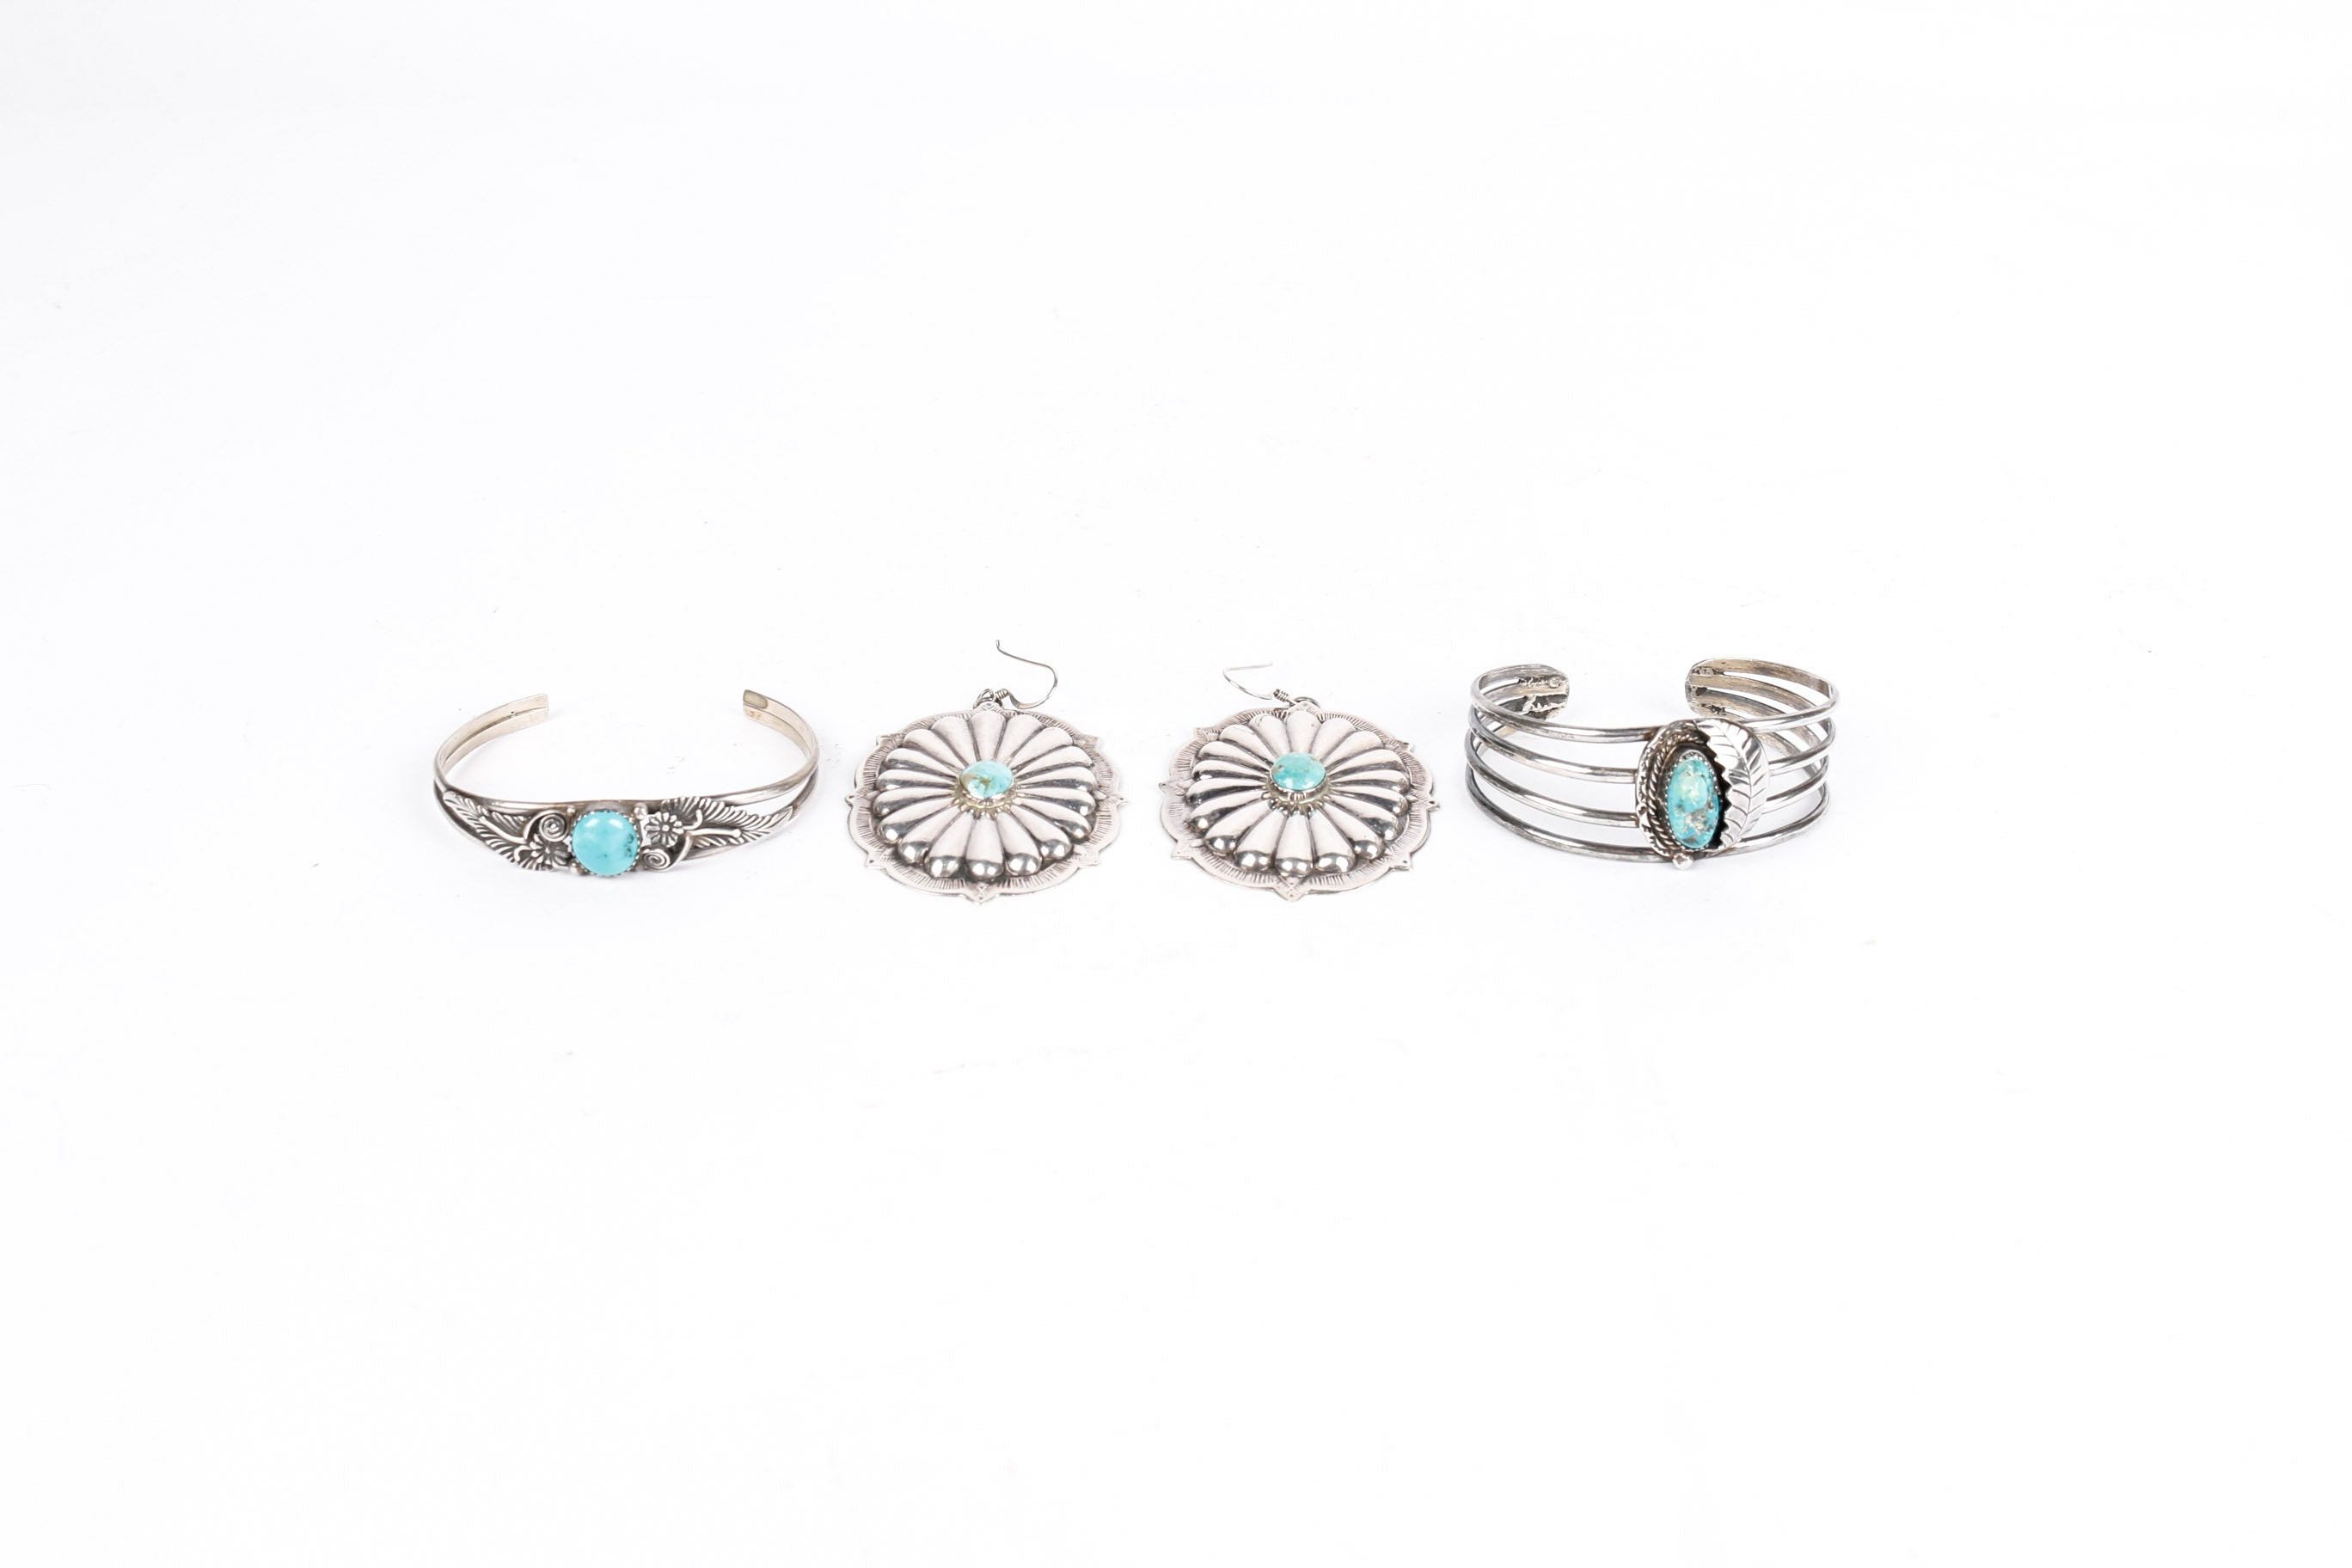 Sterling Silver and Turquoise Bracelets and Earrings